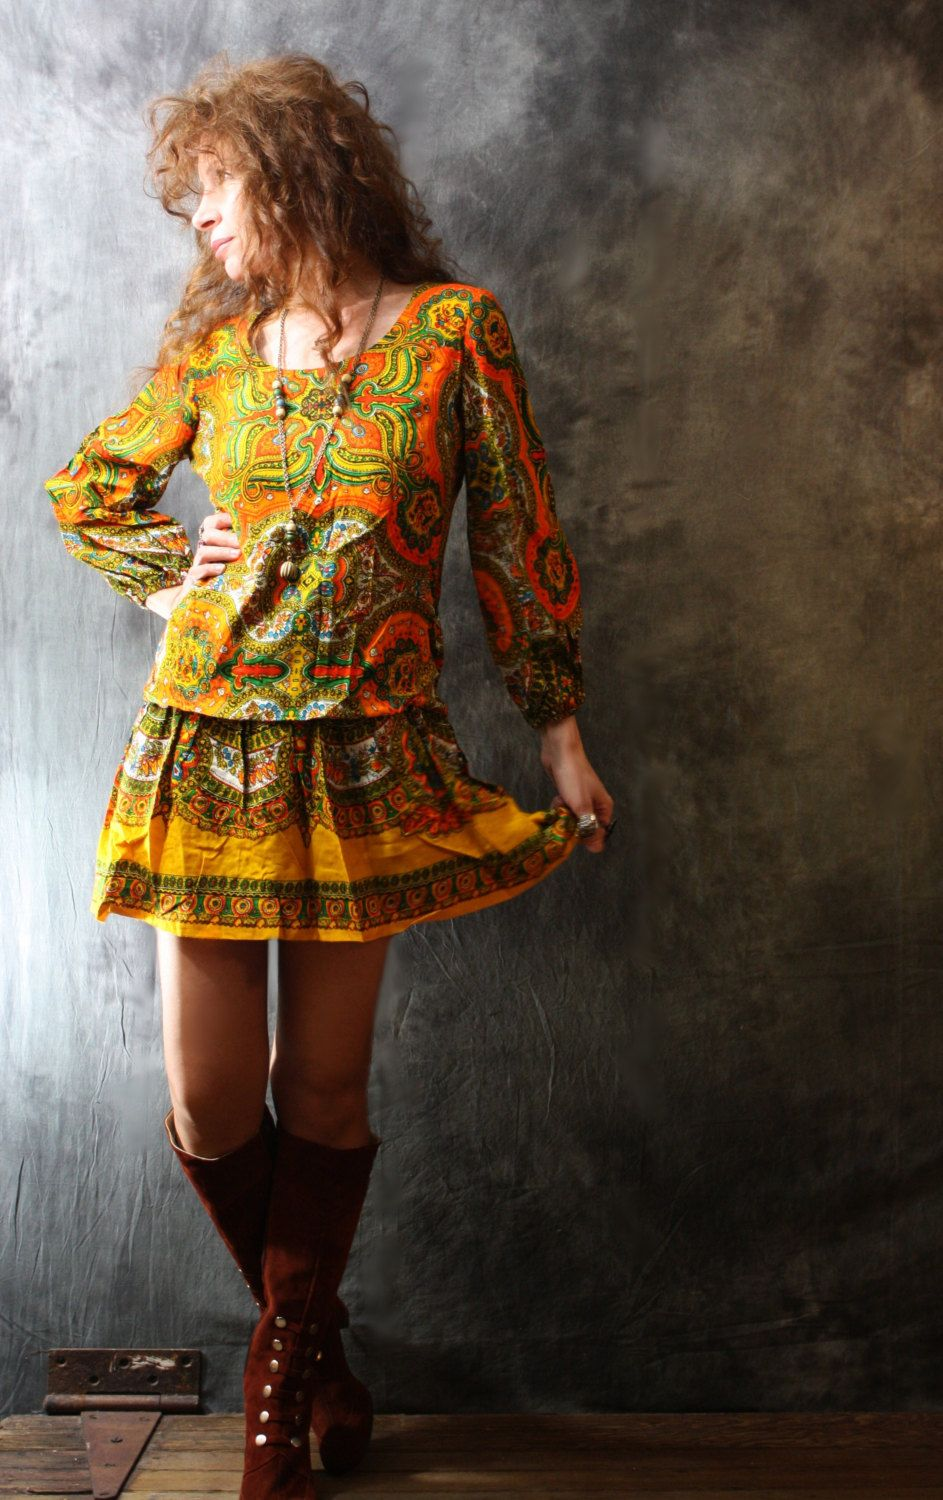 Vintage 1960s Psychedelic Paisley GoGo  Dress with Drop Waist. $67.00, via Etsy.